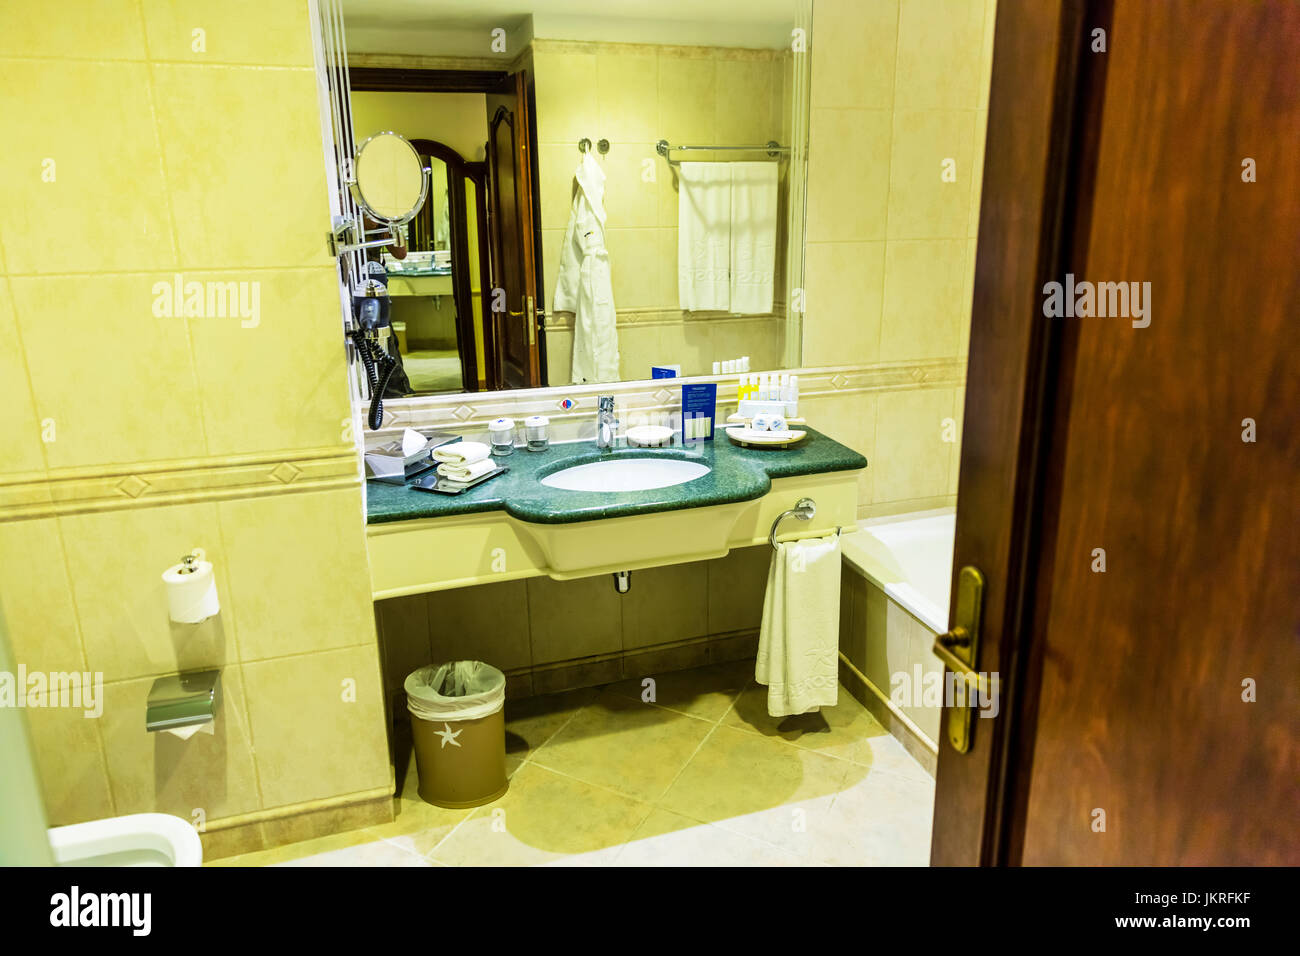 Hotel bathroom, bathroom, bathroom sink, bathroom mirror, hotel bathrooms, bathrooms, large mirror, hotel, hotels, - Stock Image